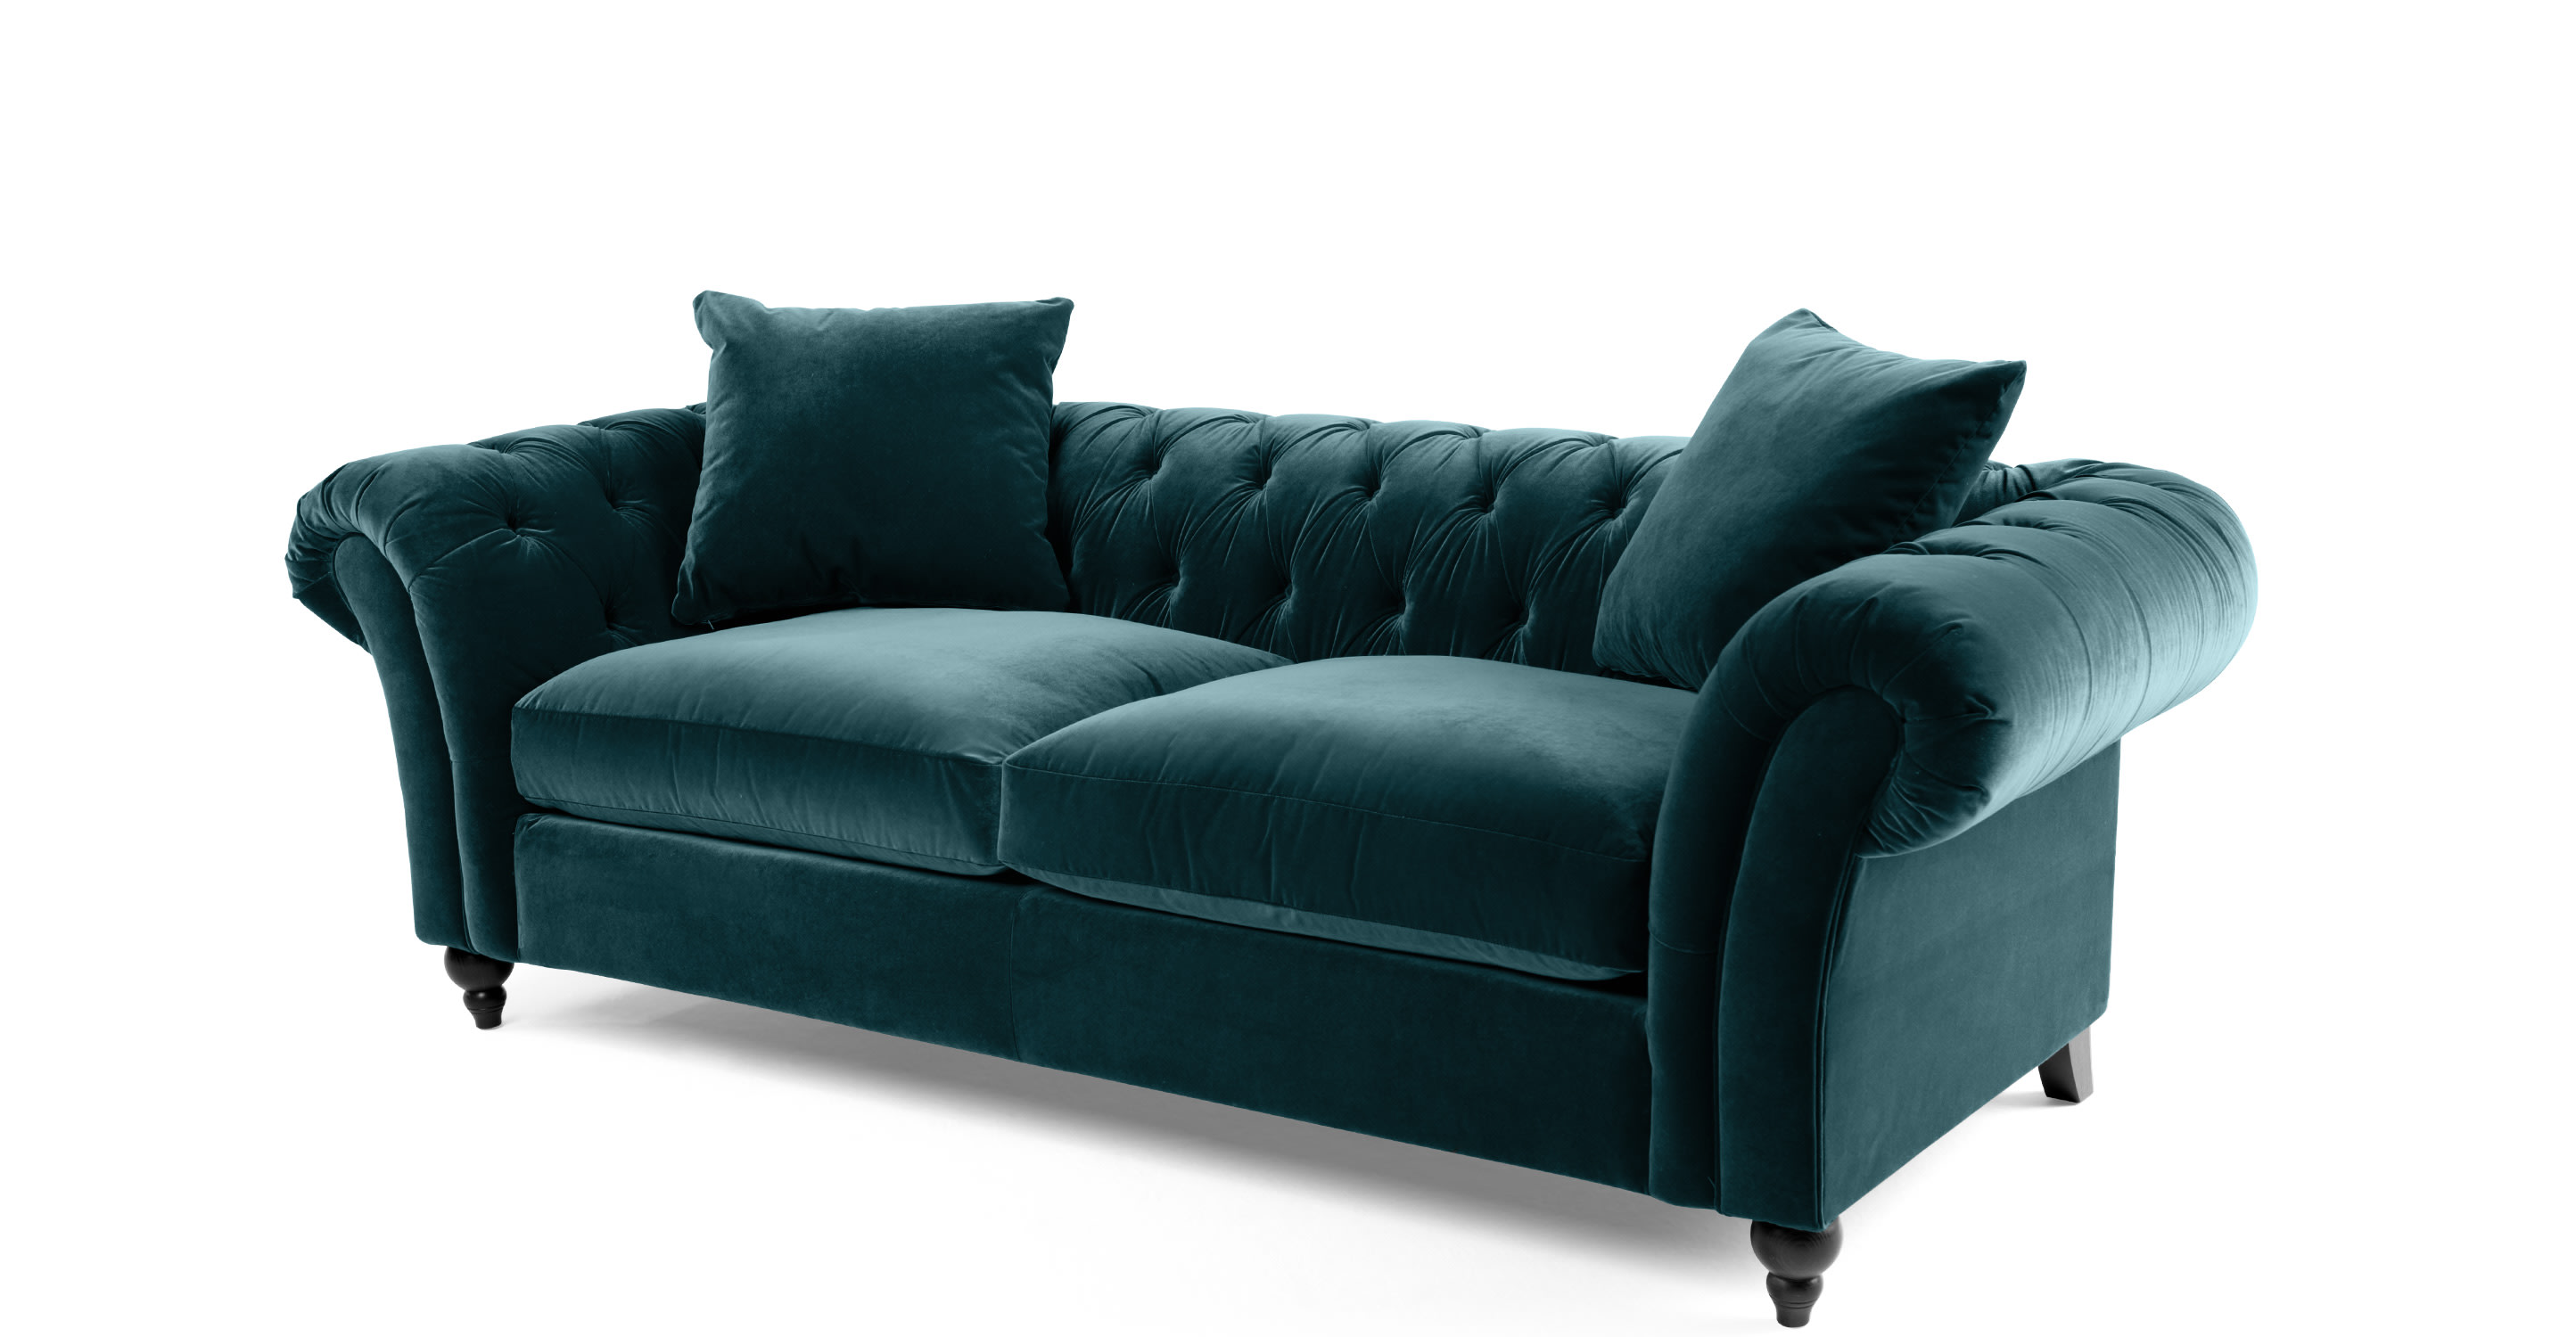 bardot 3 sitzer chesterfield sofa ozeanblauer samt. Black Bedroom Furniture Sets. Home Design Ideas